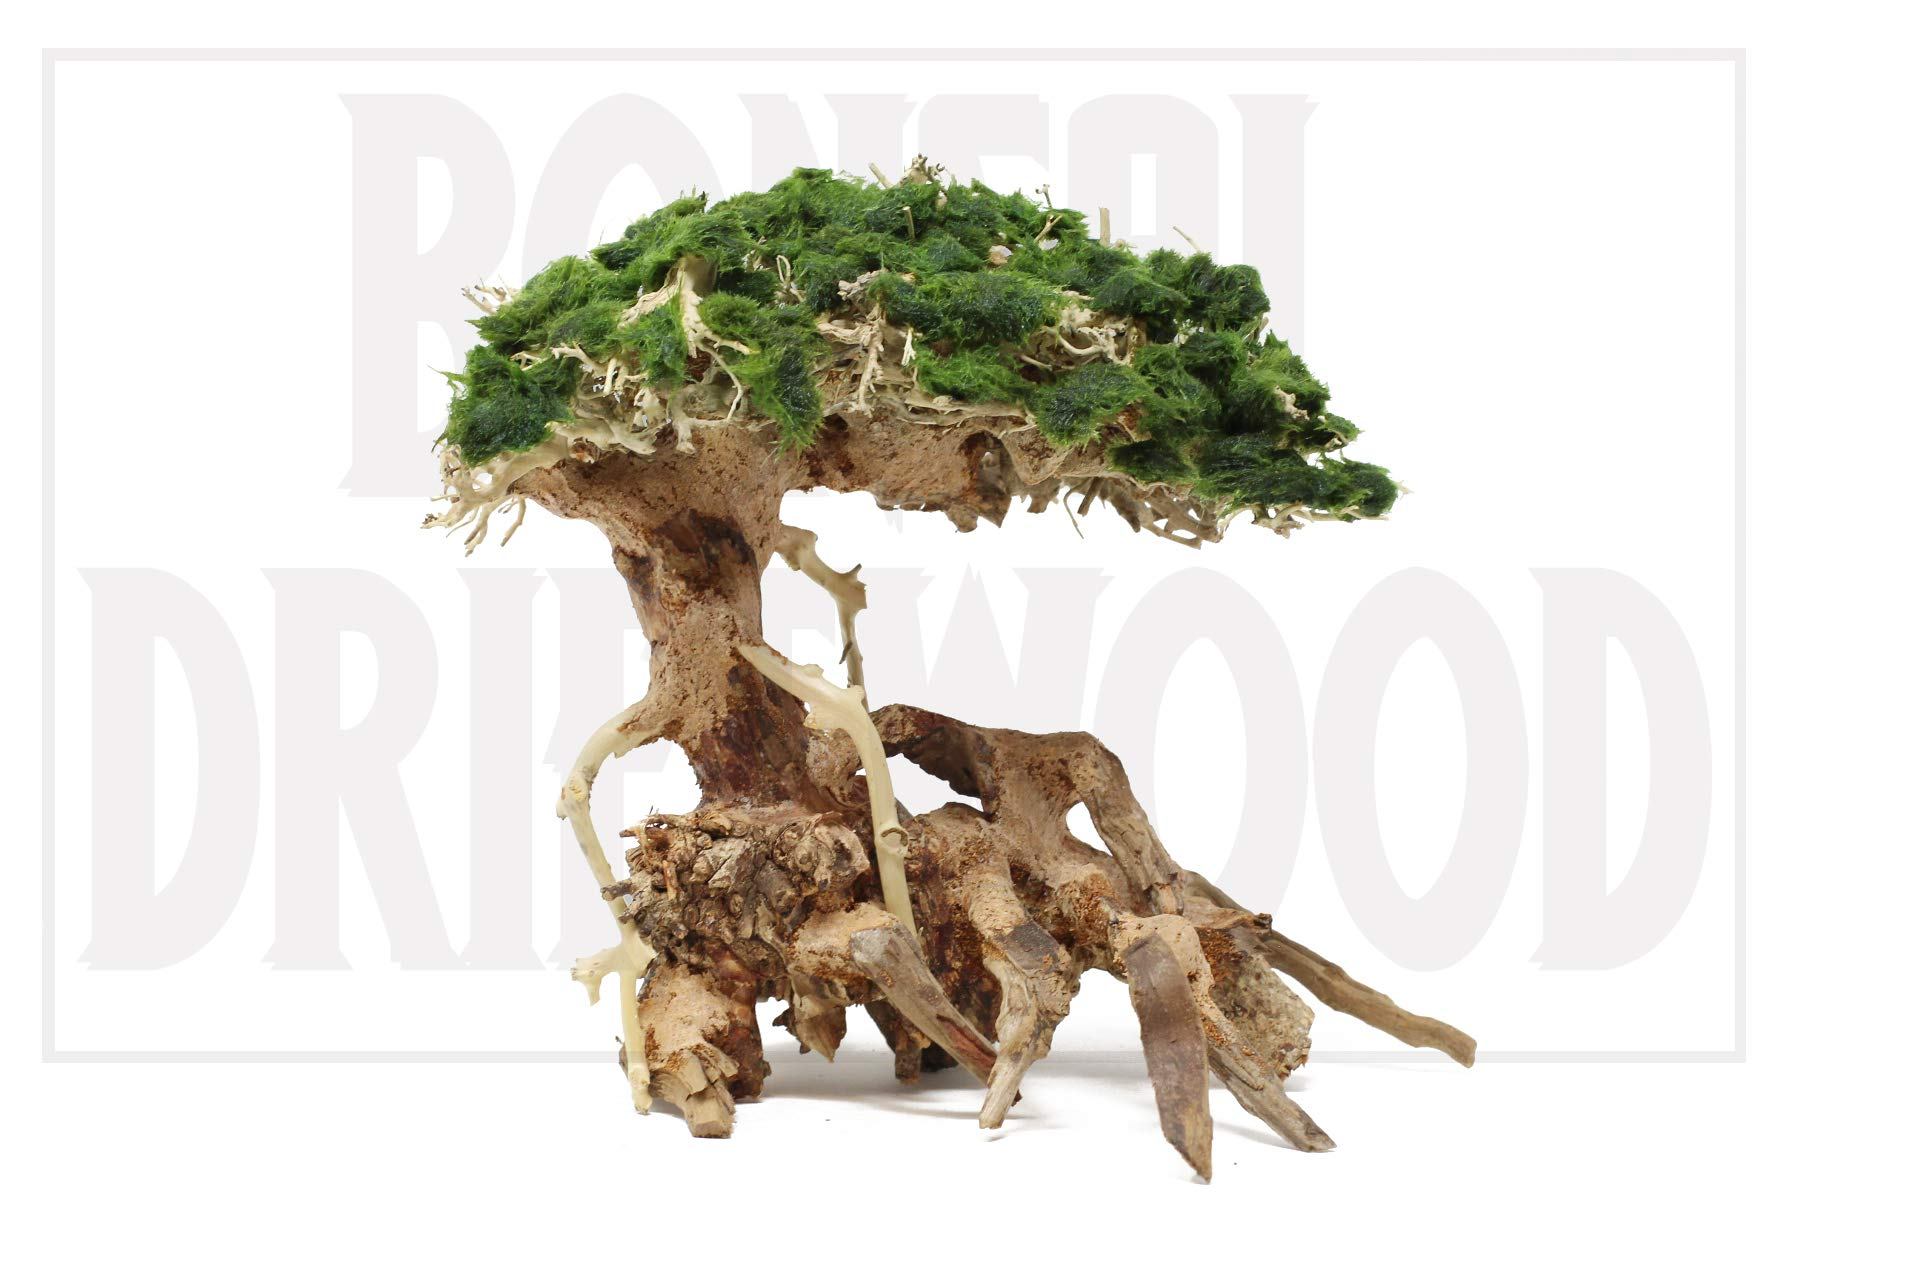 Bonsai Driftwood Aquarium Tree On Rock 8 Inch Natural Easy To Install Handcrafted Fish Tank Decoration Stabilizes Environments Helps Balance Water Ph Levels Wood